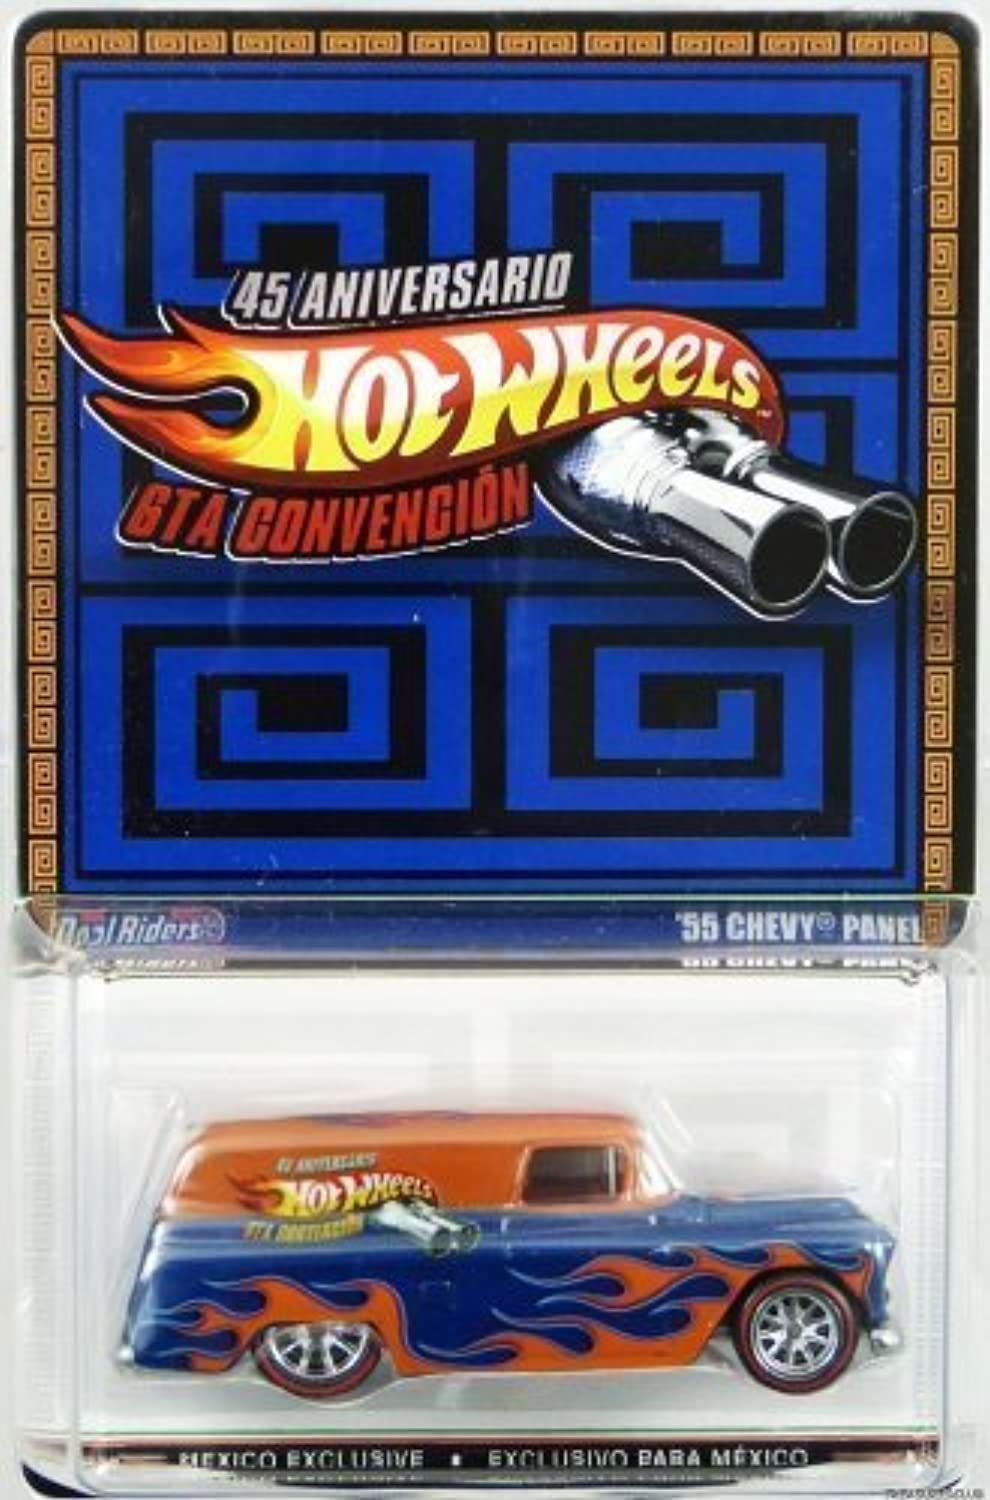 Hot Wheels 45 Anniversary 6th Mexico Convention Exclusive '55 Chevy Panel by Hot Wheels B01C6MCMXW Sonderangebot  | Sale